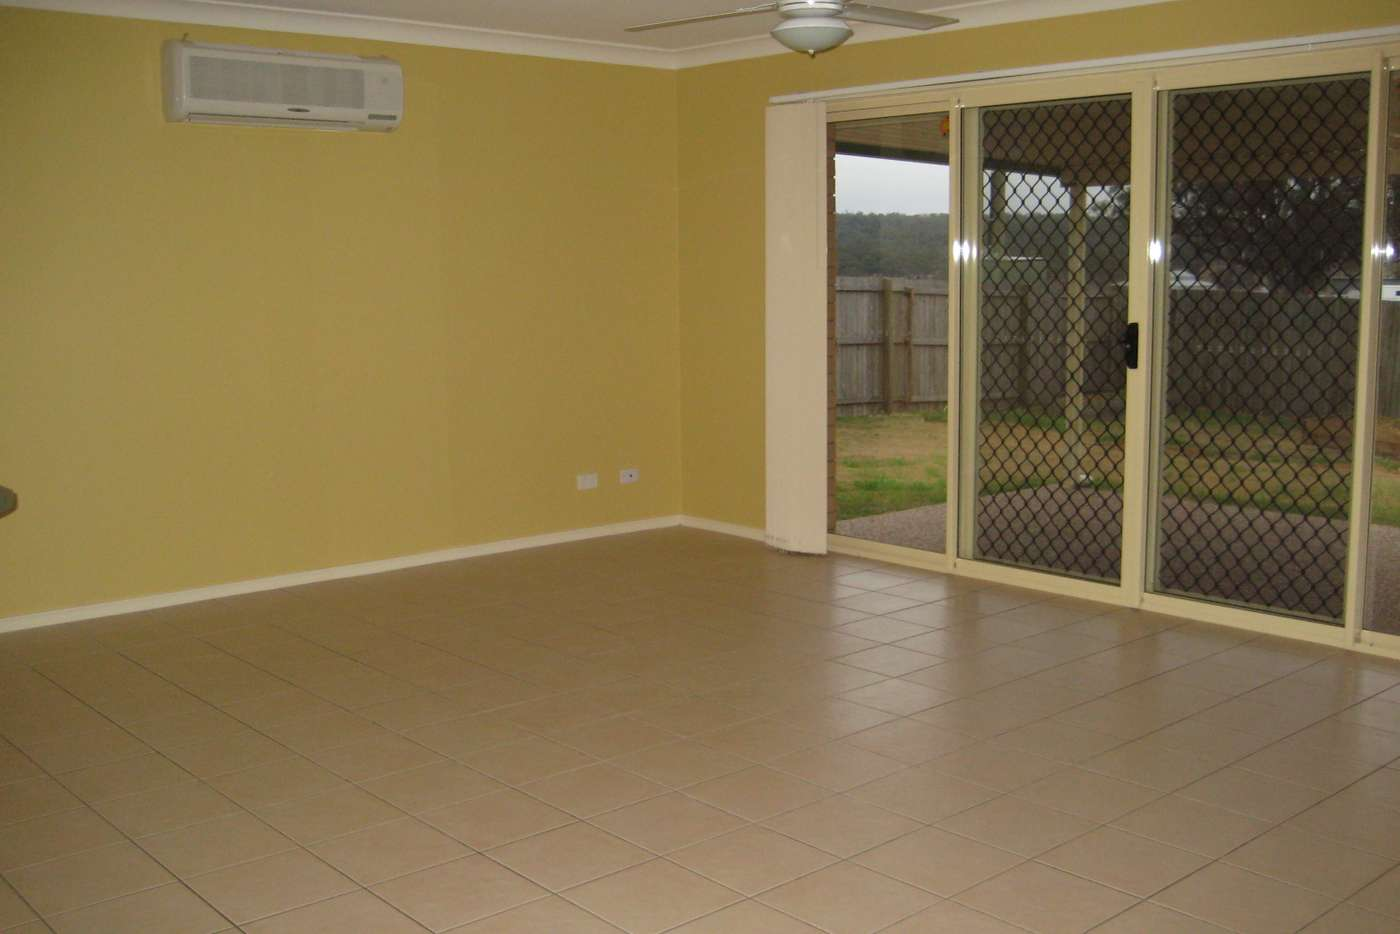 Sixth view of Homely house listing, 1 Lomandra Court, Warwick QLD 4370